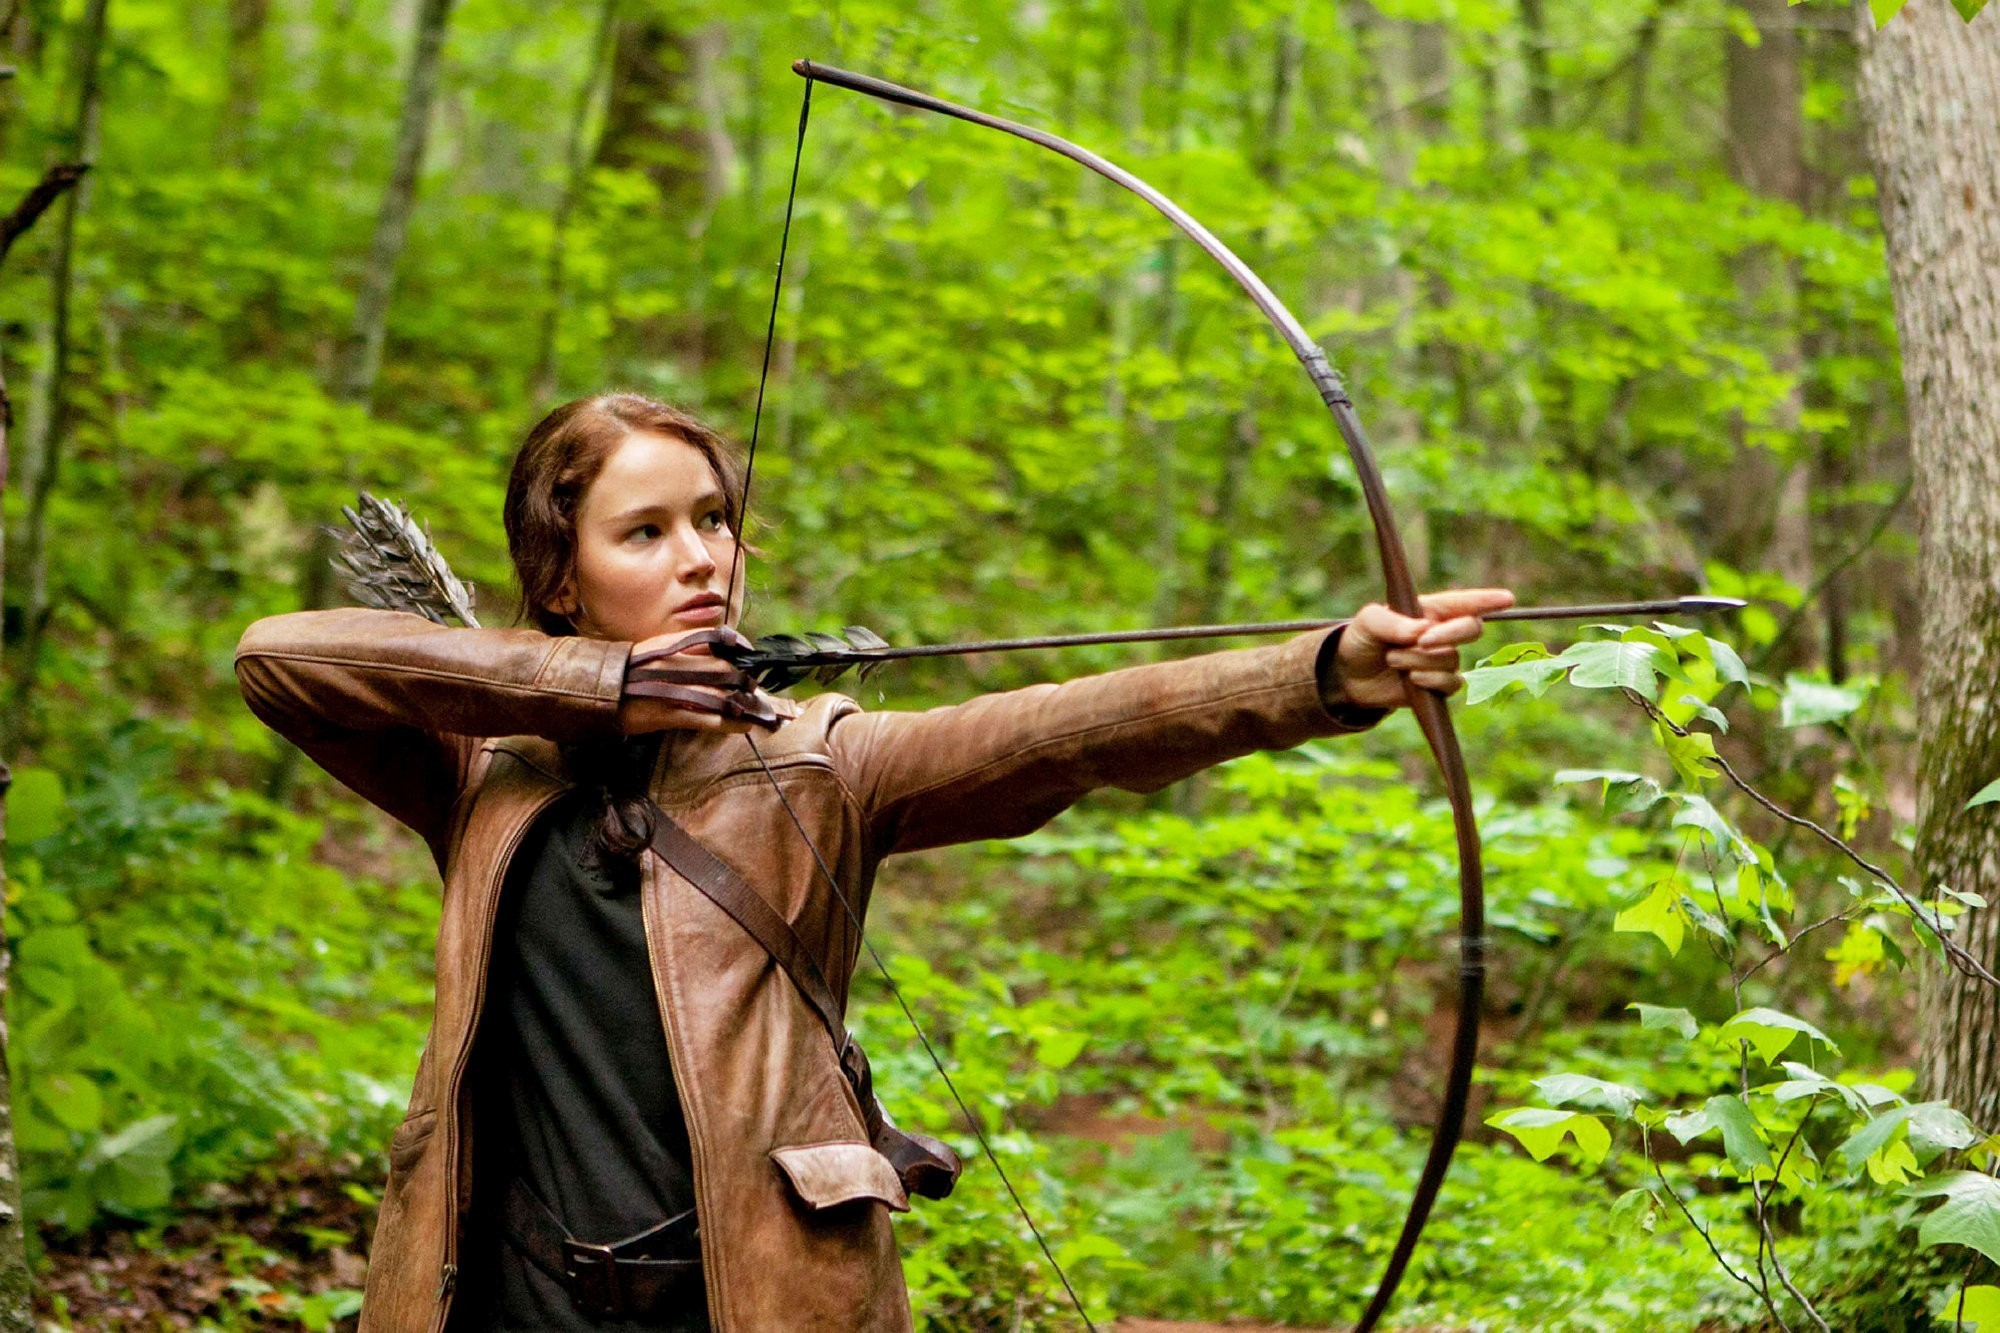 katnis_-everdeen_the_hunger_games_10_powerful_women_from_movies_and_tv_series_fabulous-muses2